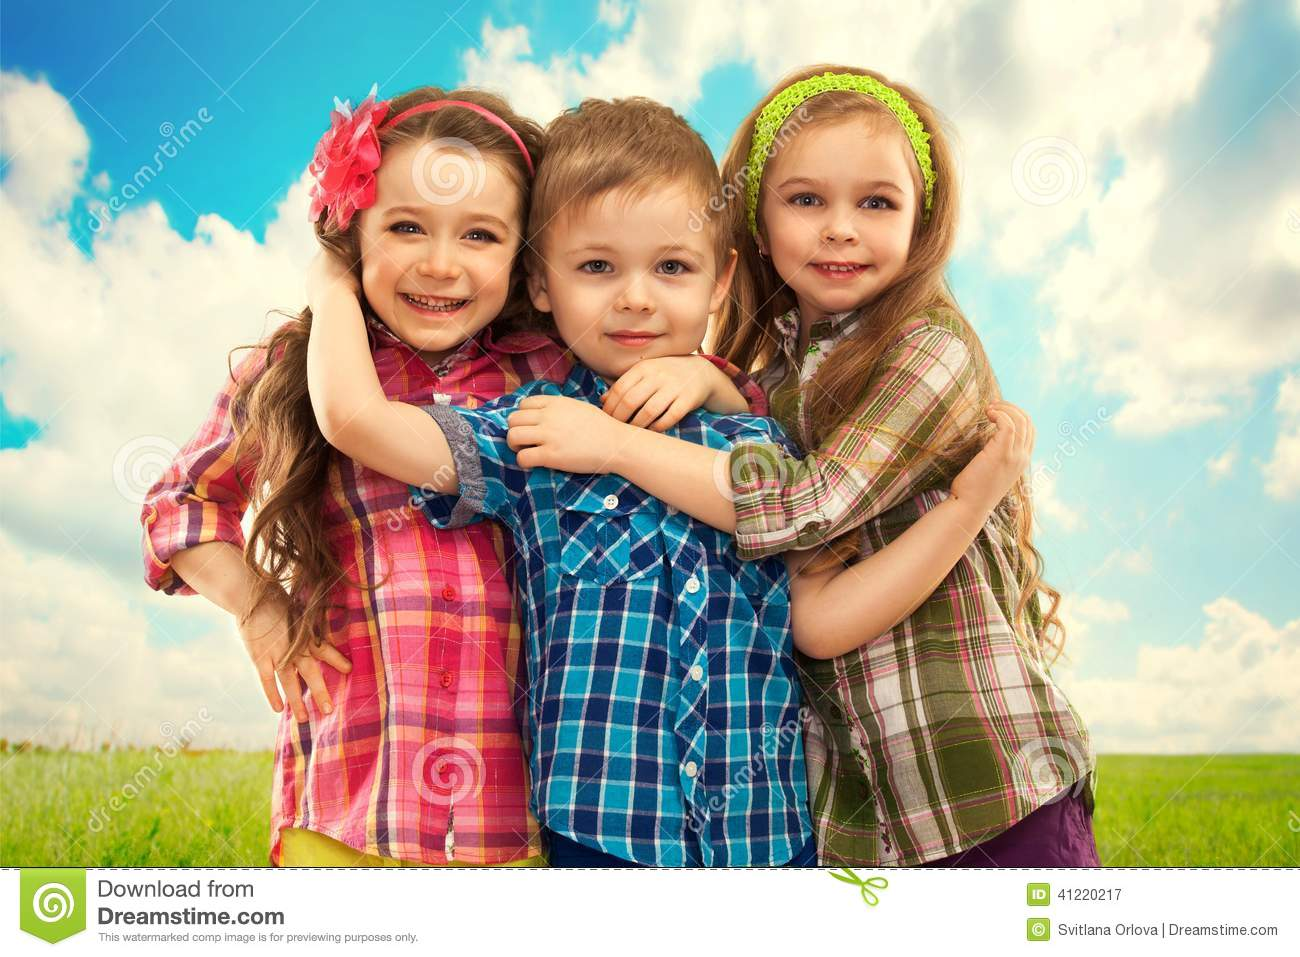 Https Www Dreamstime Com Stock Photo Cute Fashion Kids Hugging Each Other Fashionable Friendship Concept Image41220217